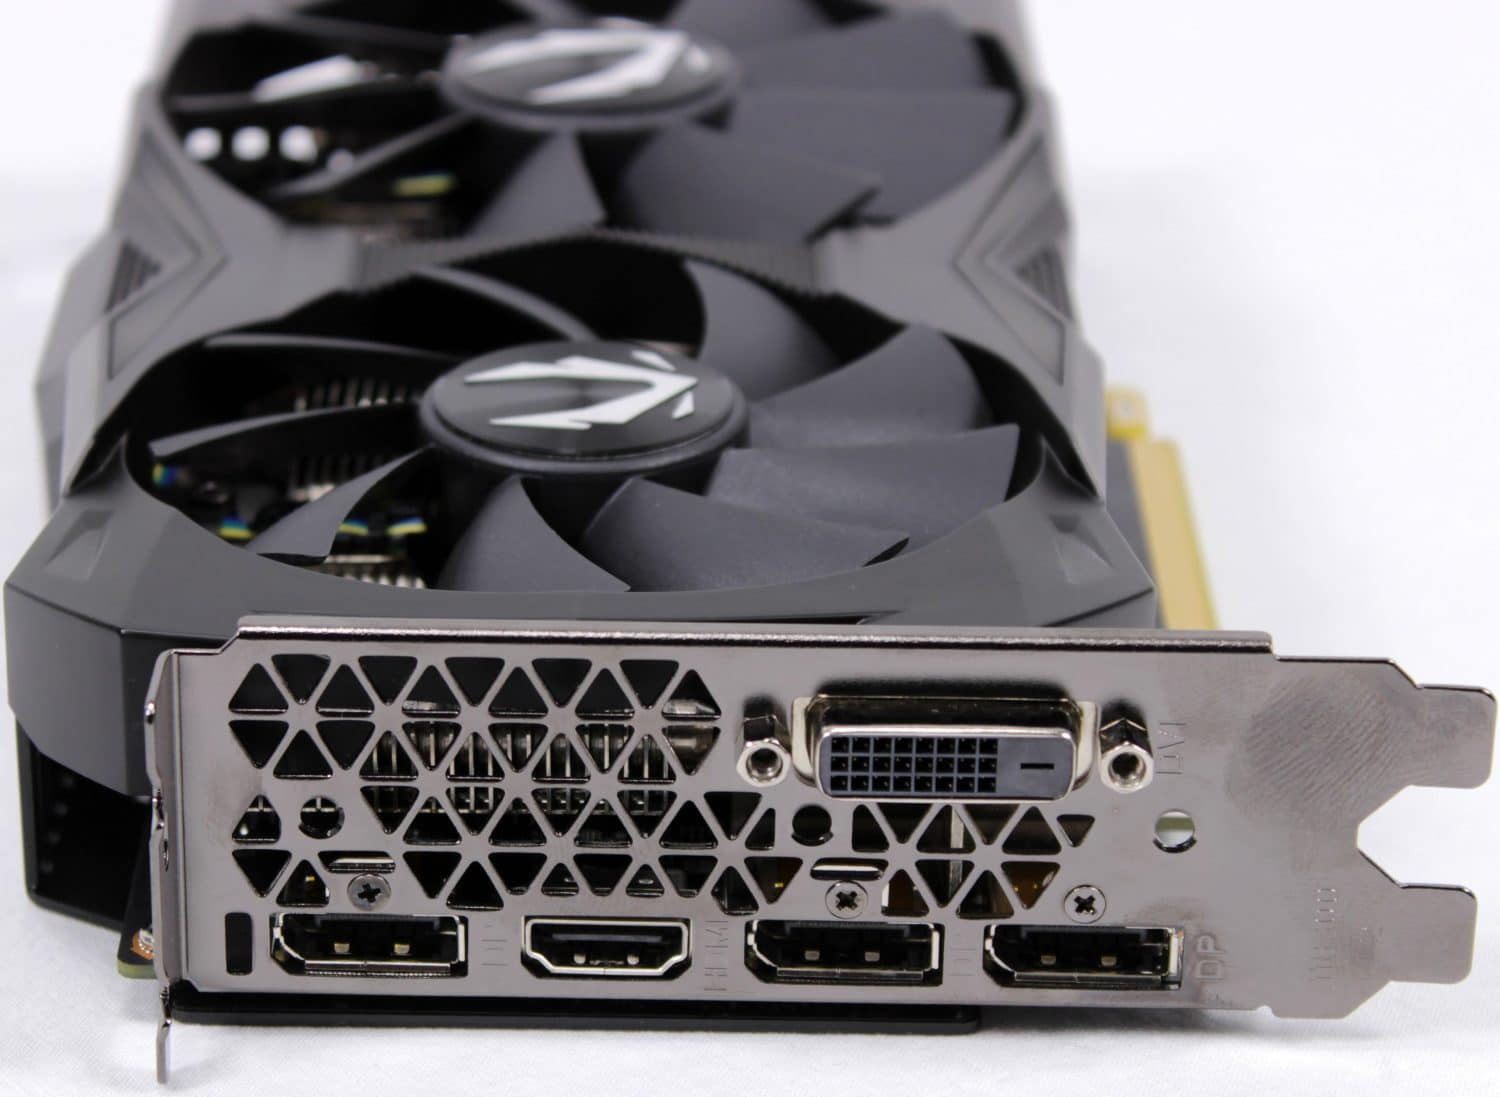 Zotac RTX 2070 Mini - Zotac Puts RTX 2070 on an Even Smaller